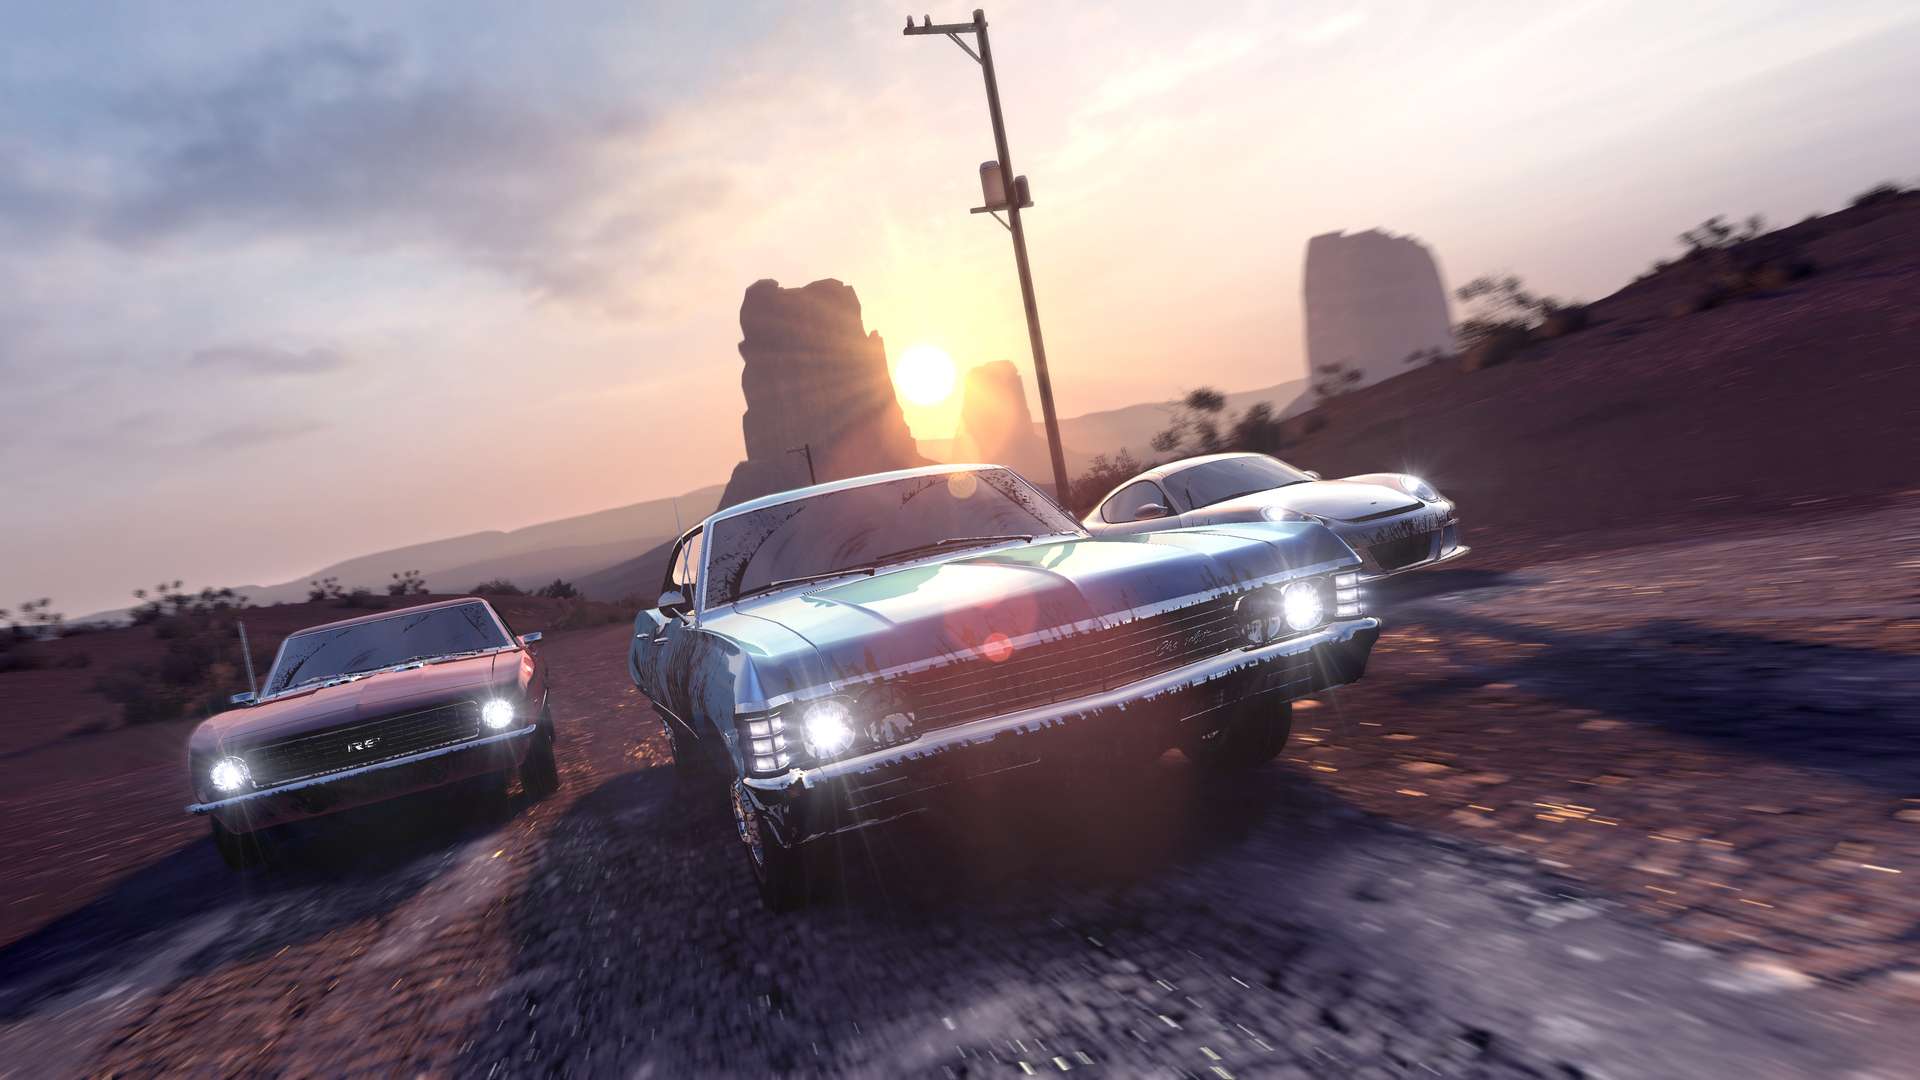 Chei gratuite pentru The Crew beta până pe 29 august [VIDEO]